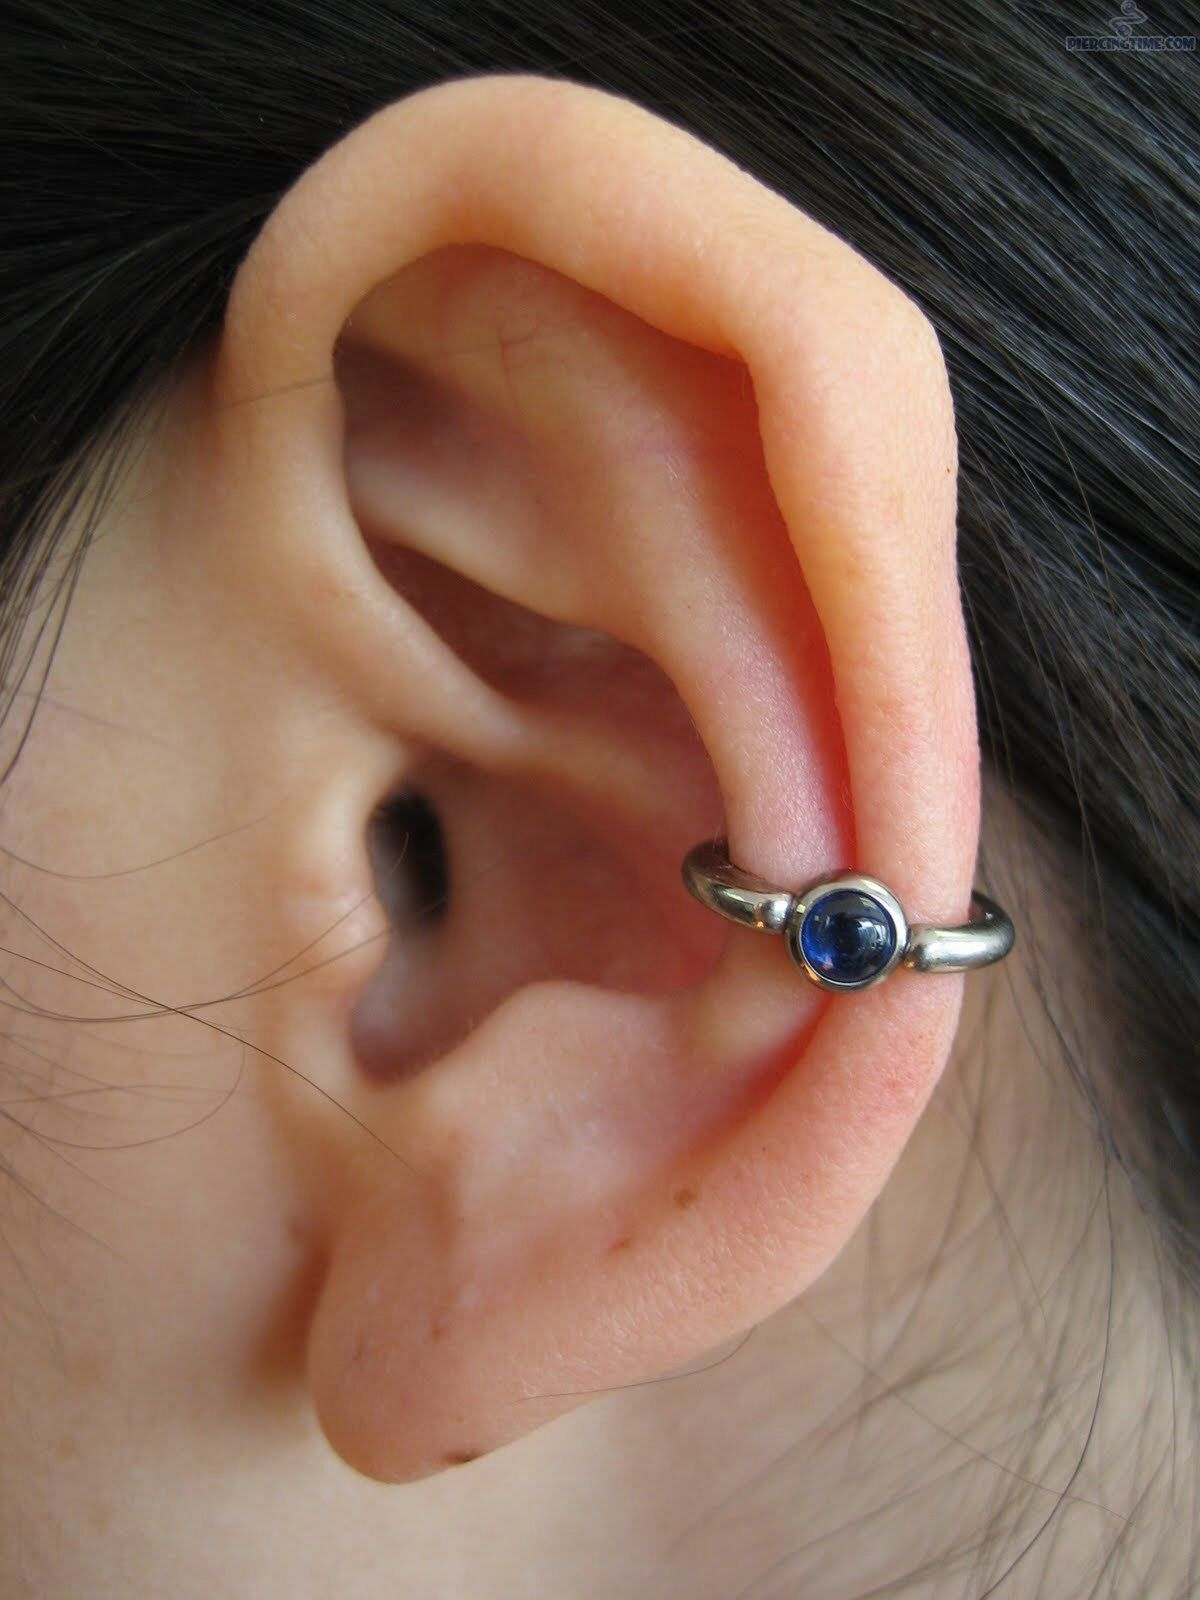 Conch piercing | Tattoos & piercings | Piercings, Ear ...